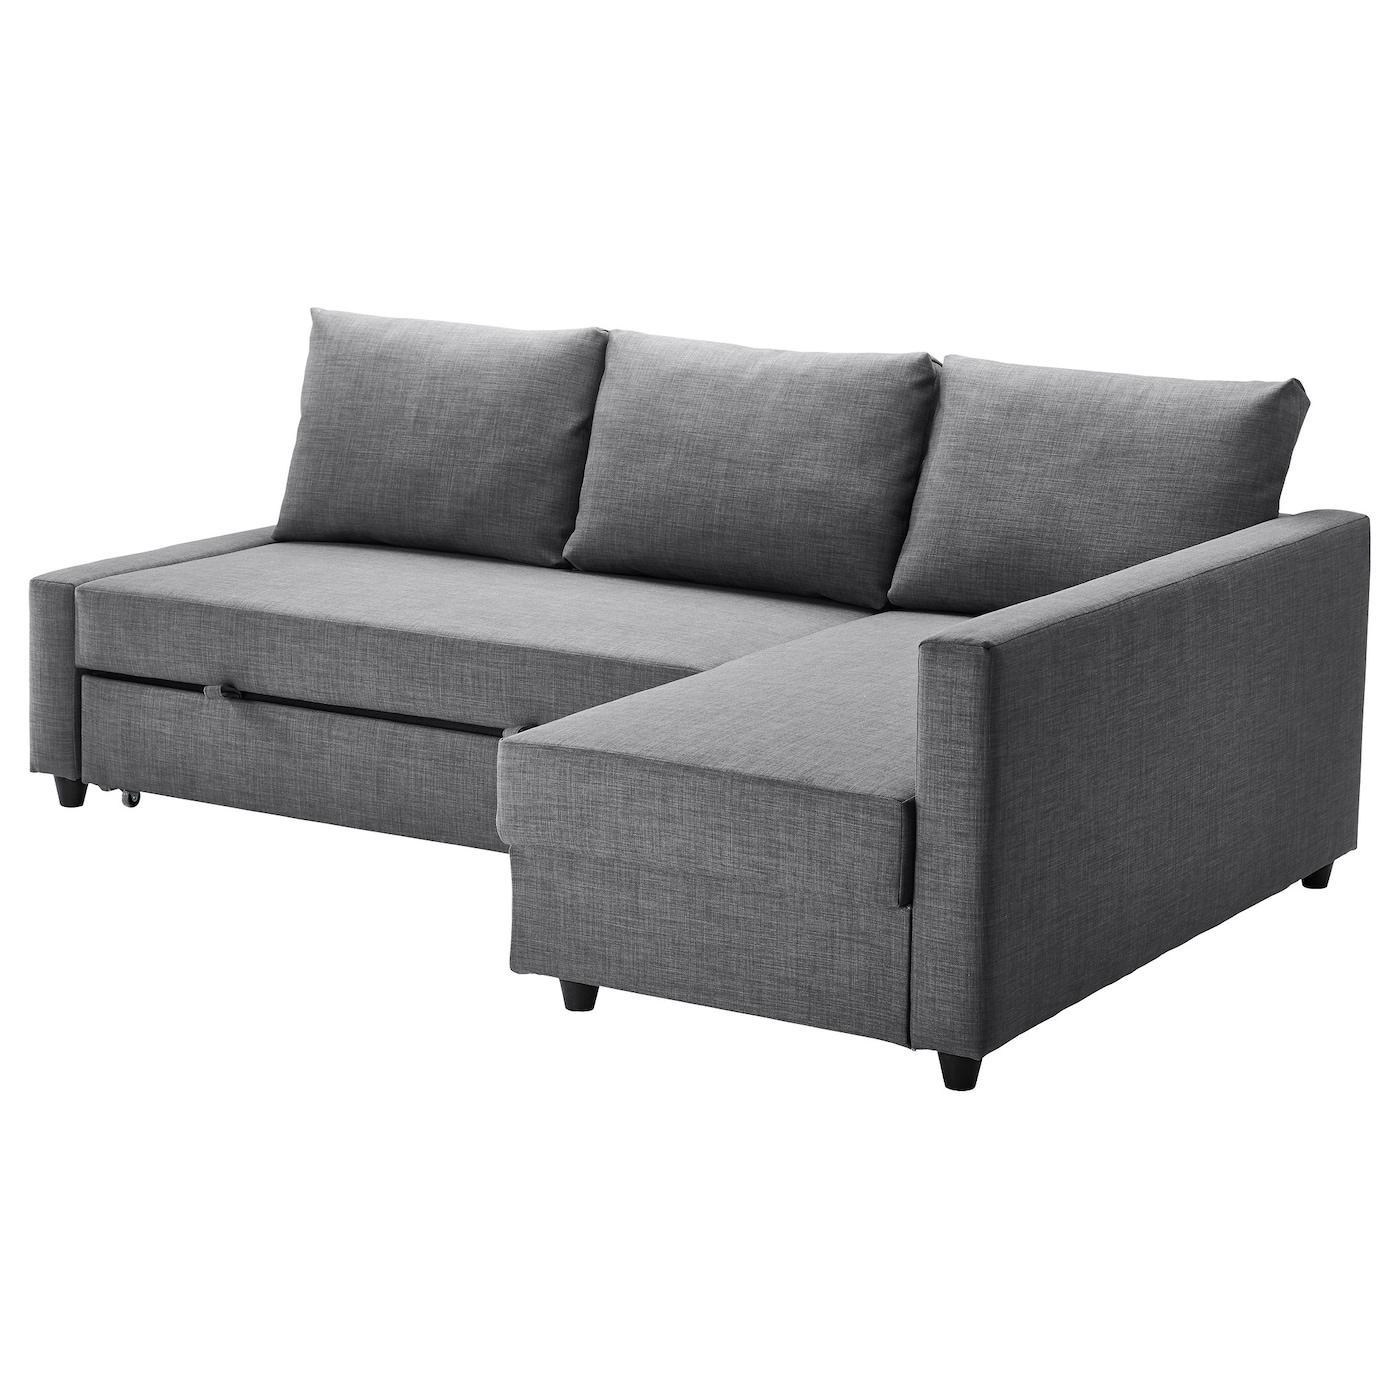 friheten corner sofa-bed with storage skiftebo dark grey - ikea